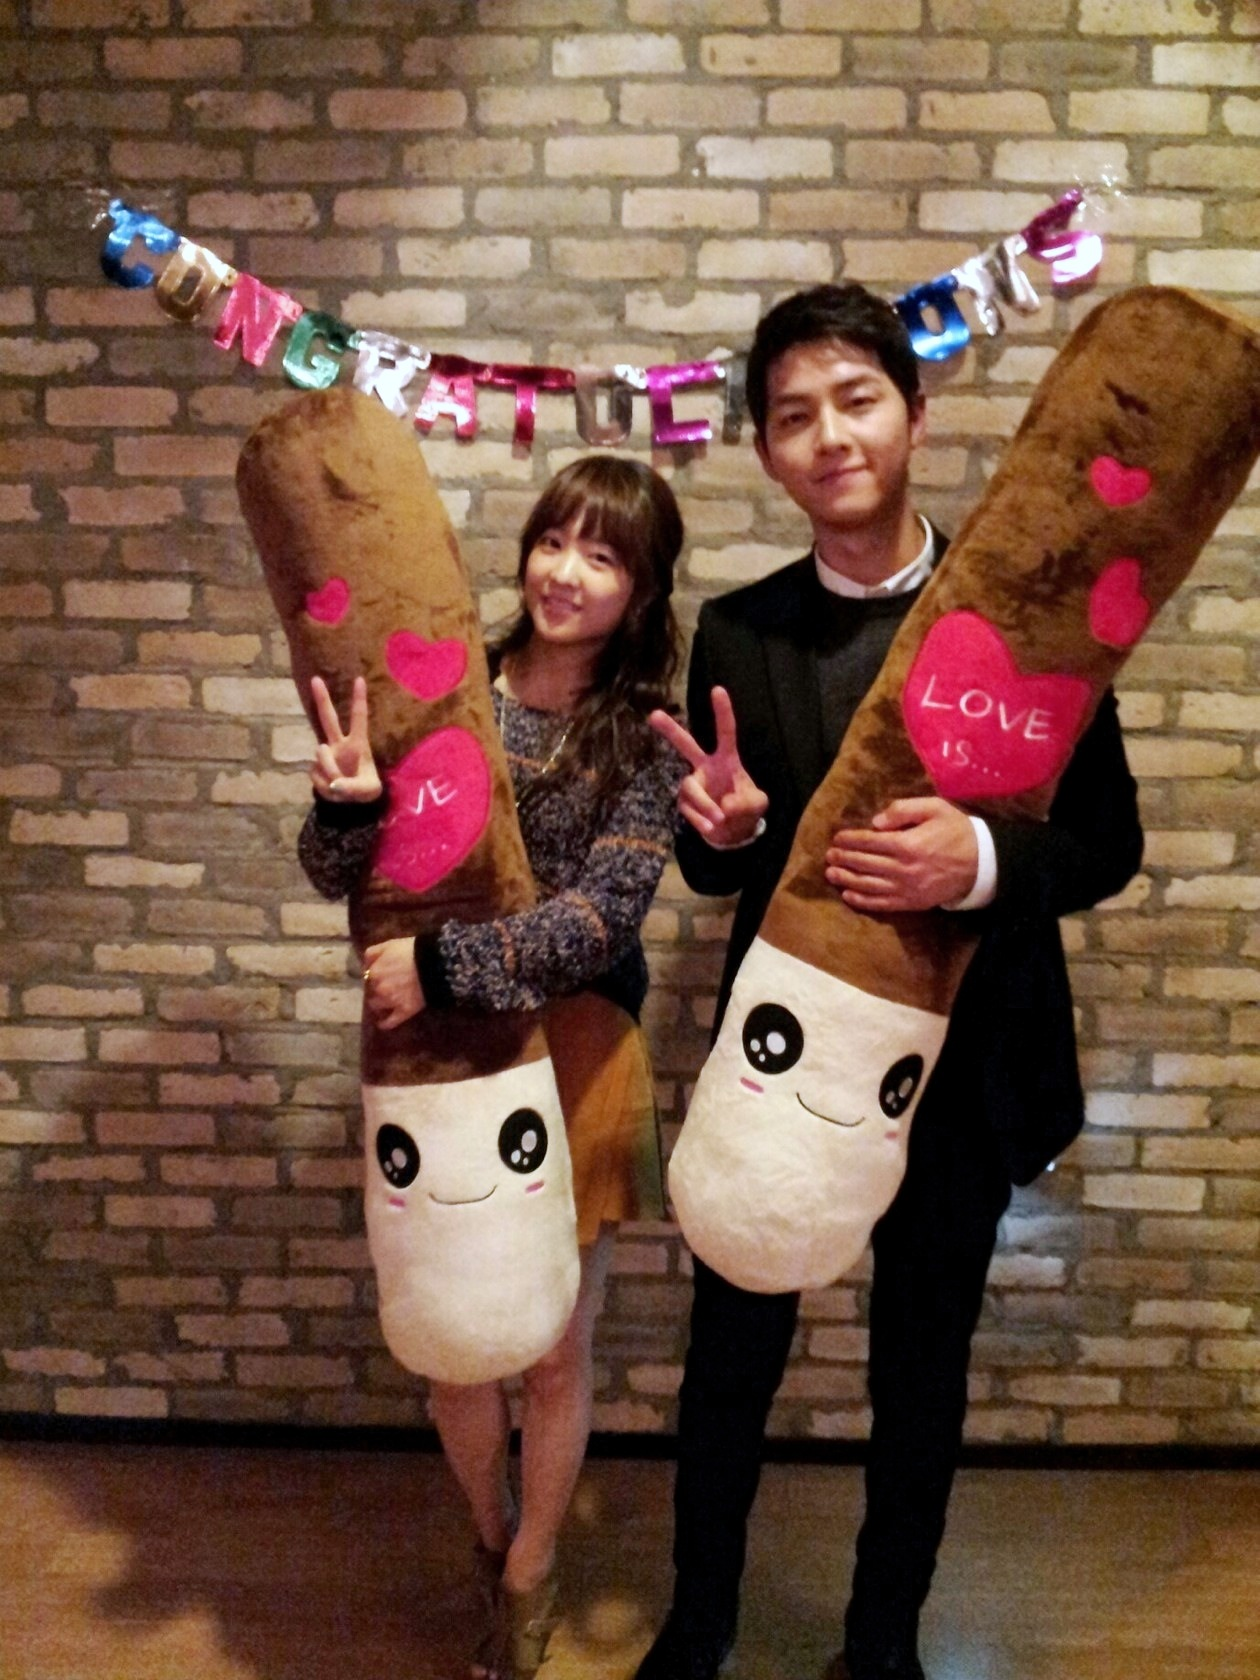 Song Song Couple Soompi Forum : couple, soompi, forum, Official, Couple, Thread, Joong, Young, Shippers', Paradise, Soompi, Forums